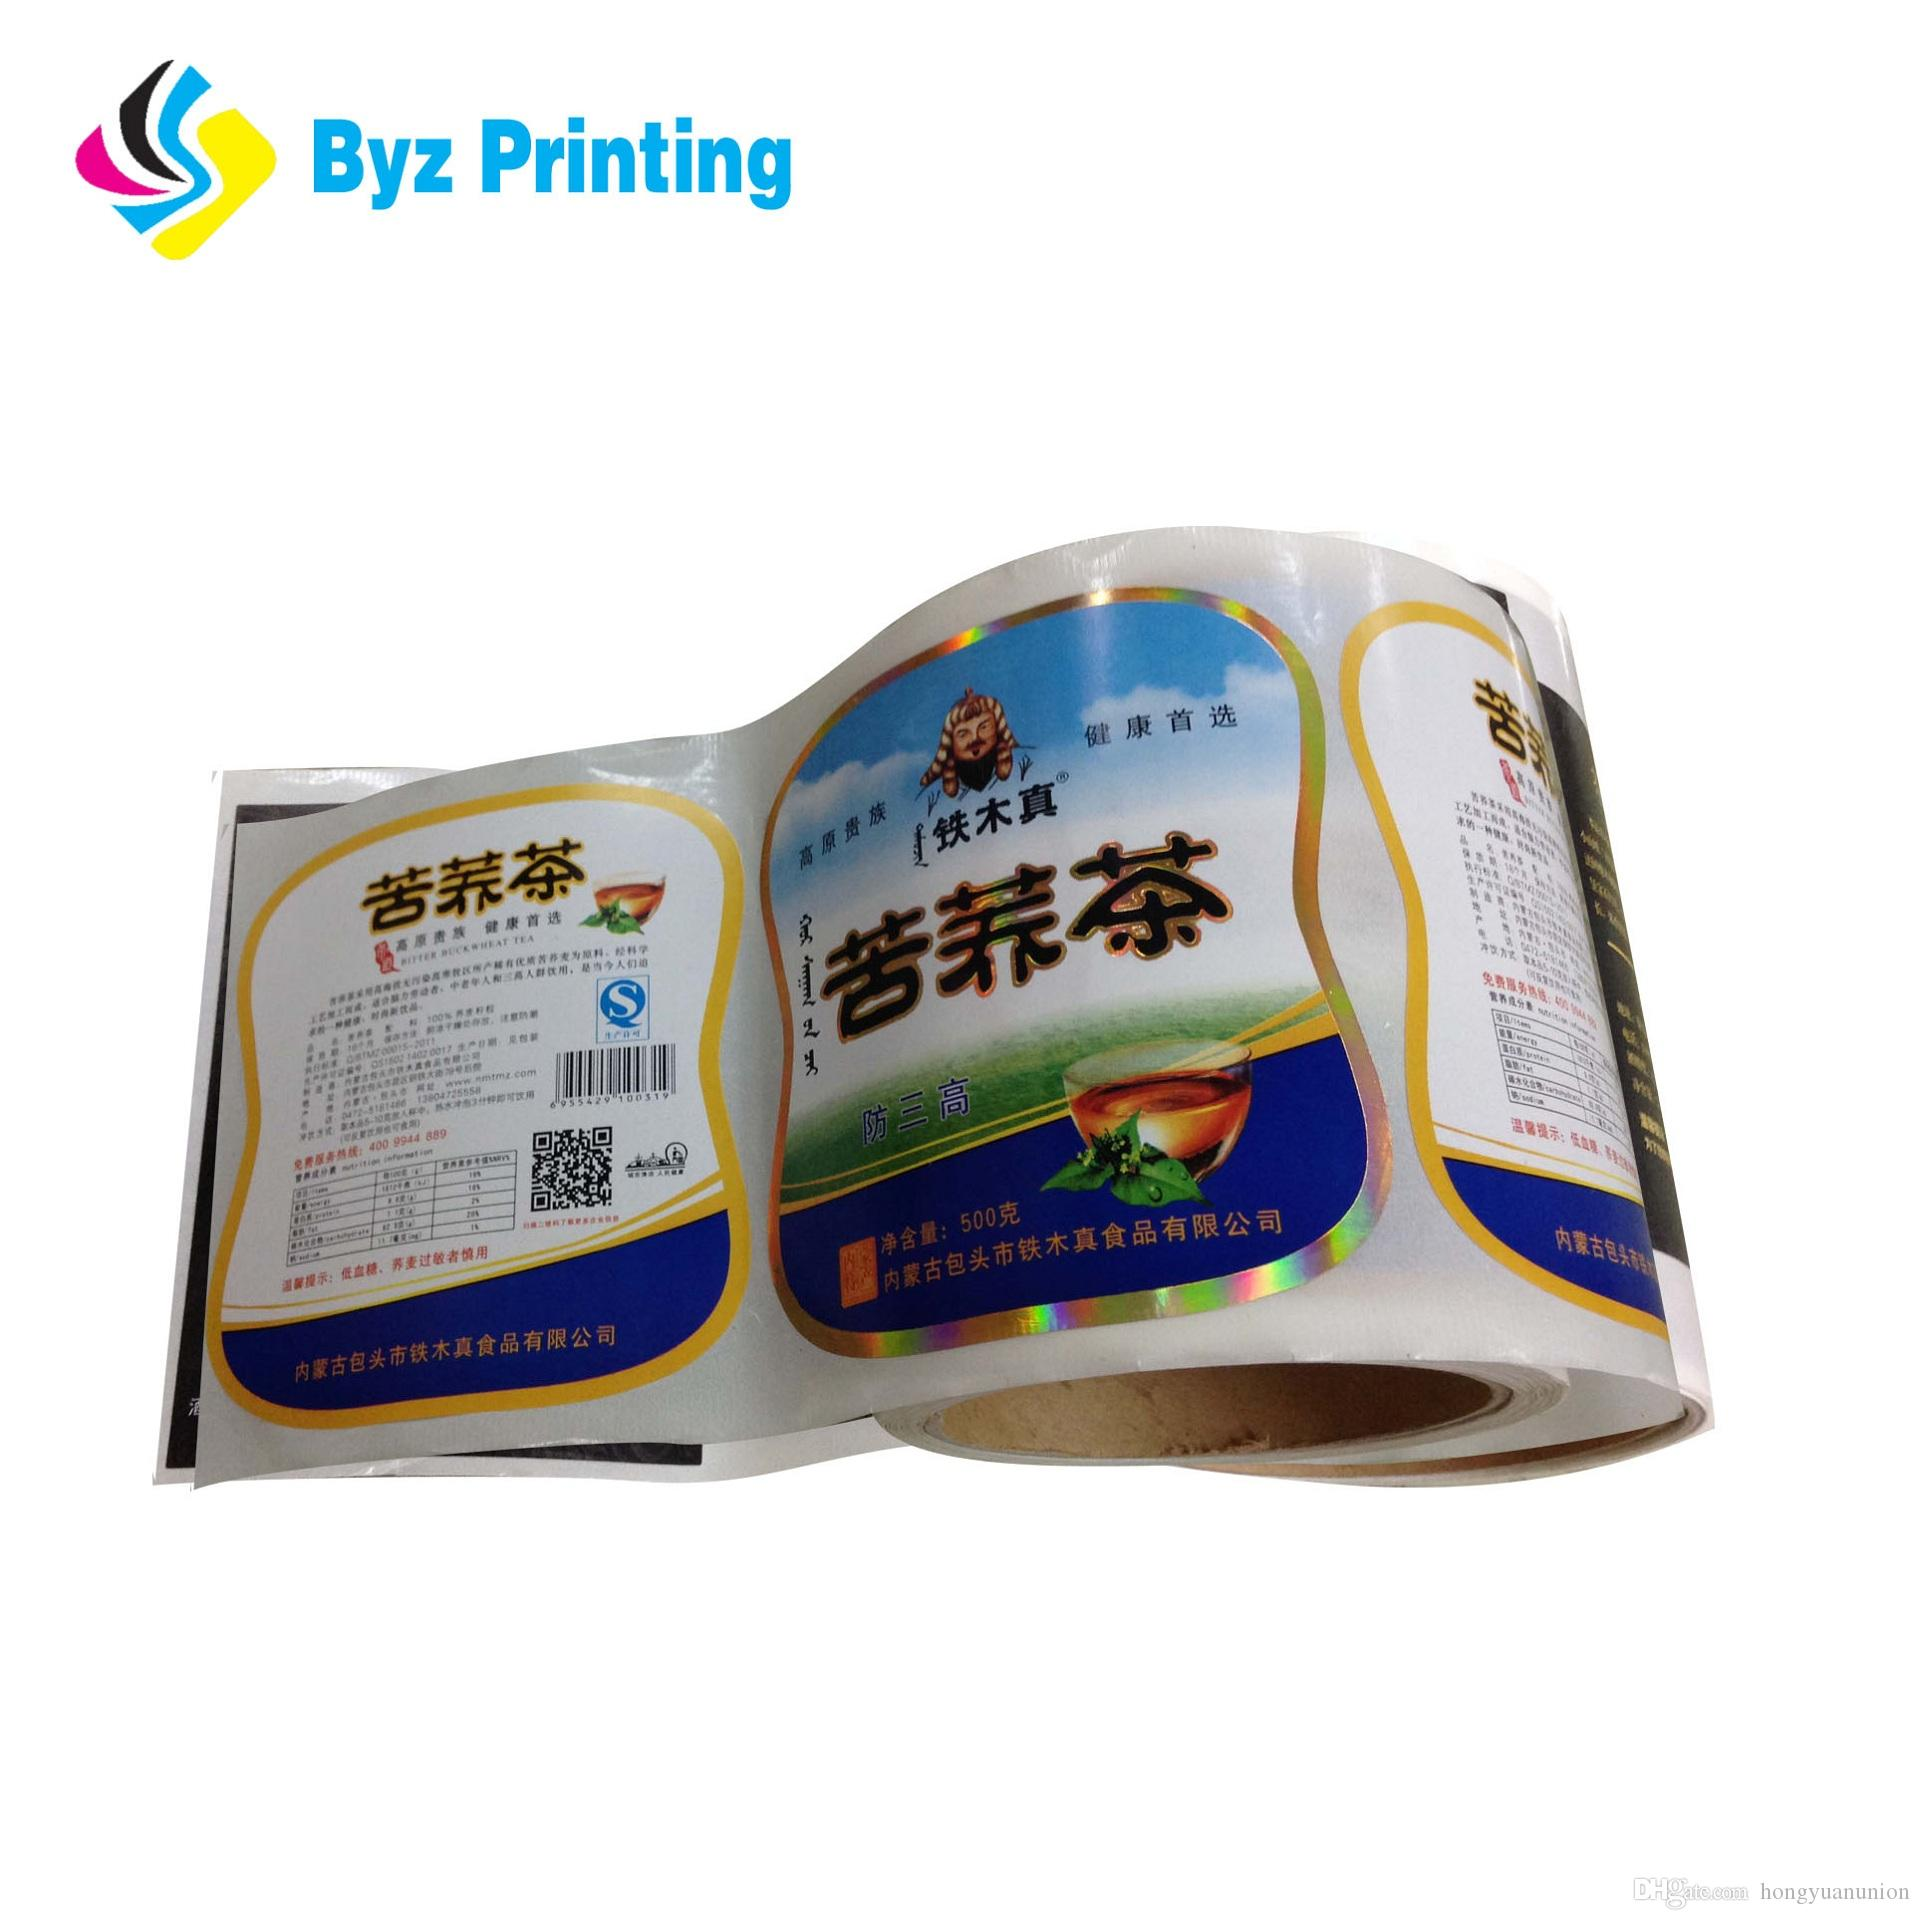 2019 custom printed self adhesive food packaging label waterproof food sticker from hongyuanunion 0 04 dhgate com